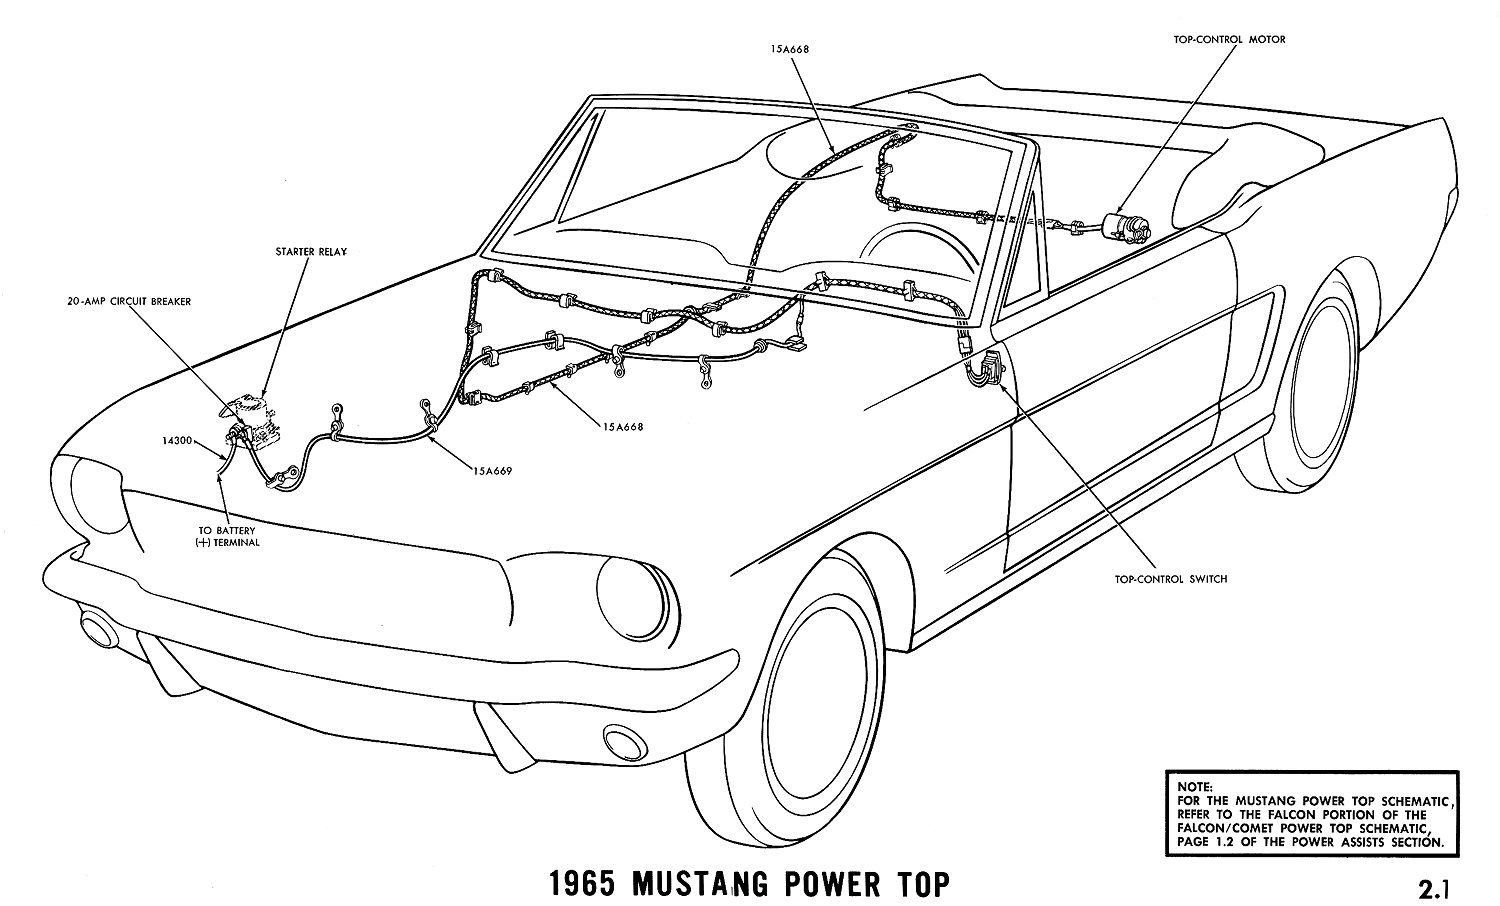 1996 Ford Mustang Alternator Wiring Diagram Libraries 1987 1965 Diagrams Average Joe Restoration1965 Power Top Pictorial Or Schematic